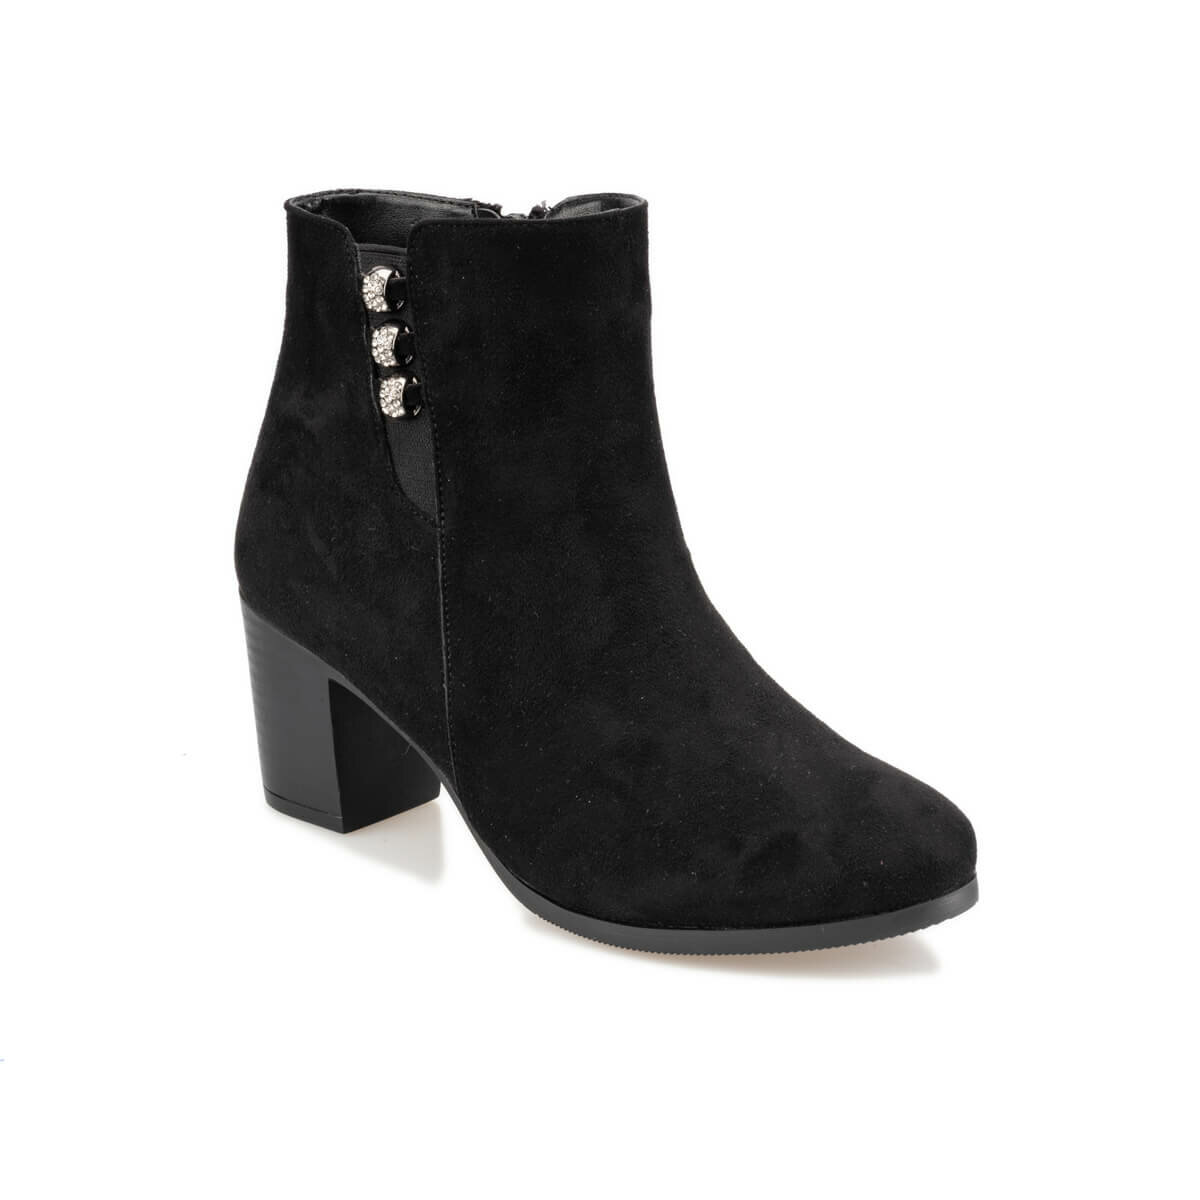 FLO 92.314310SZ Black Women Boots Polaris